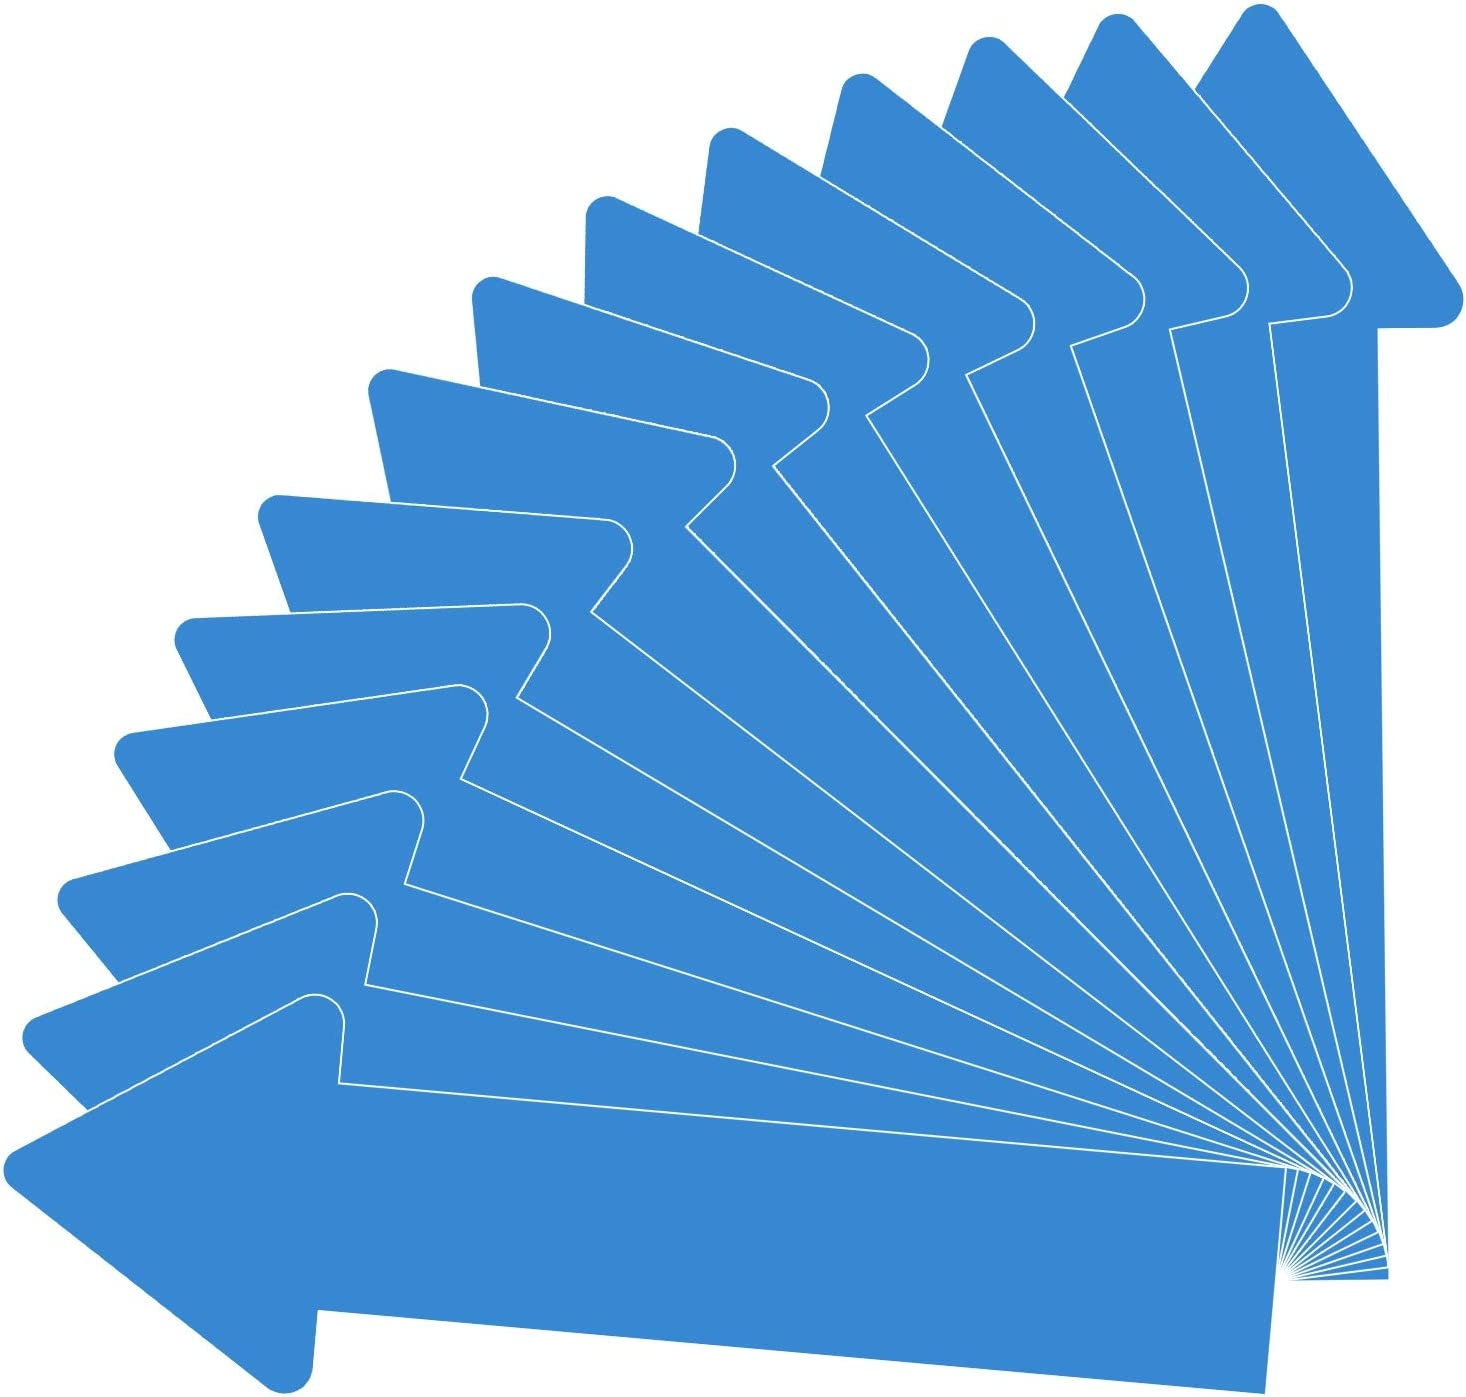 Blue 30 Pack 12 Inch Arrow Decals Stickers for Floor Wall Removable Adhesive Arrow Decal Commercial Grade Waterproof Arrow Sign